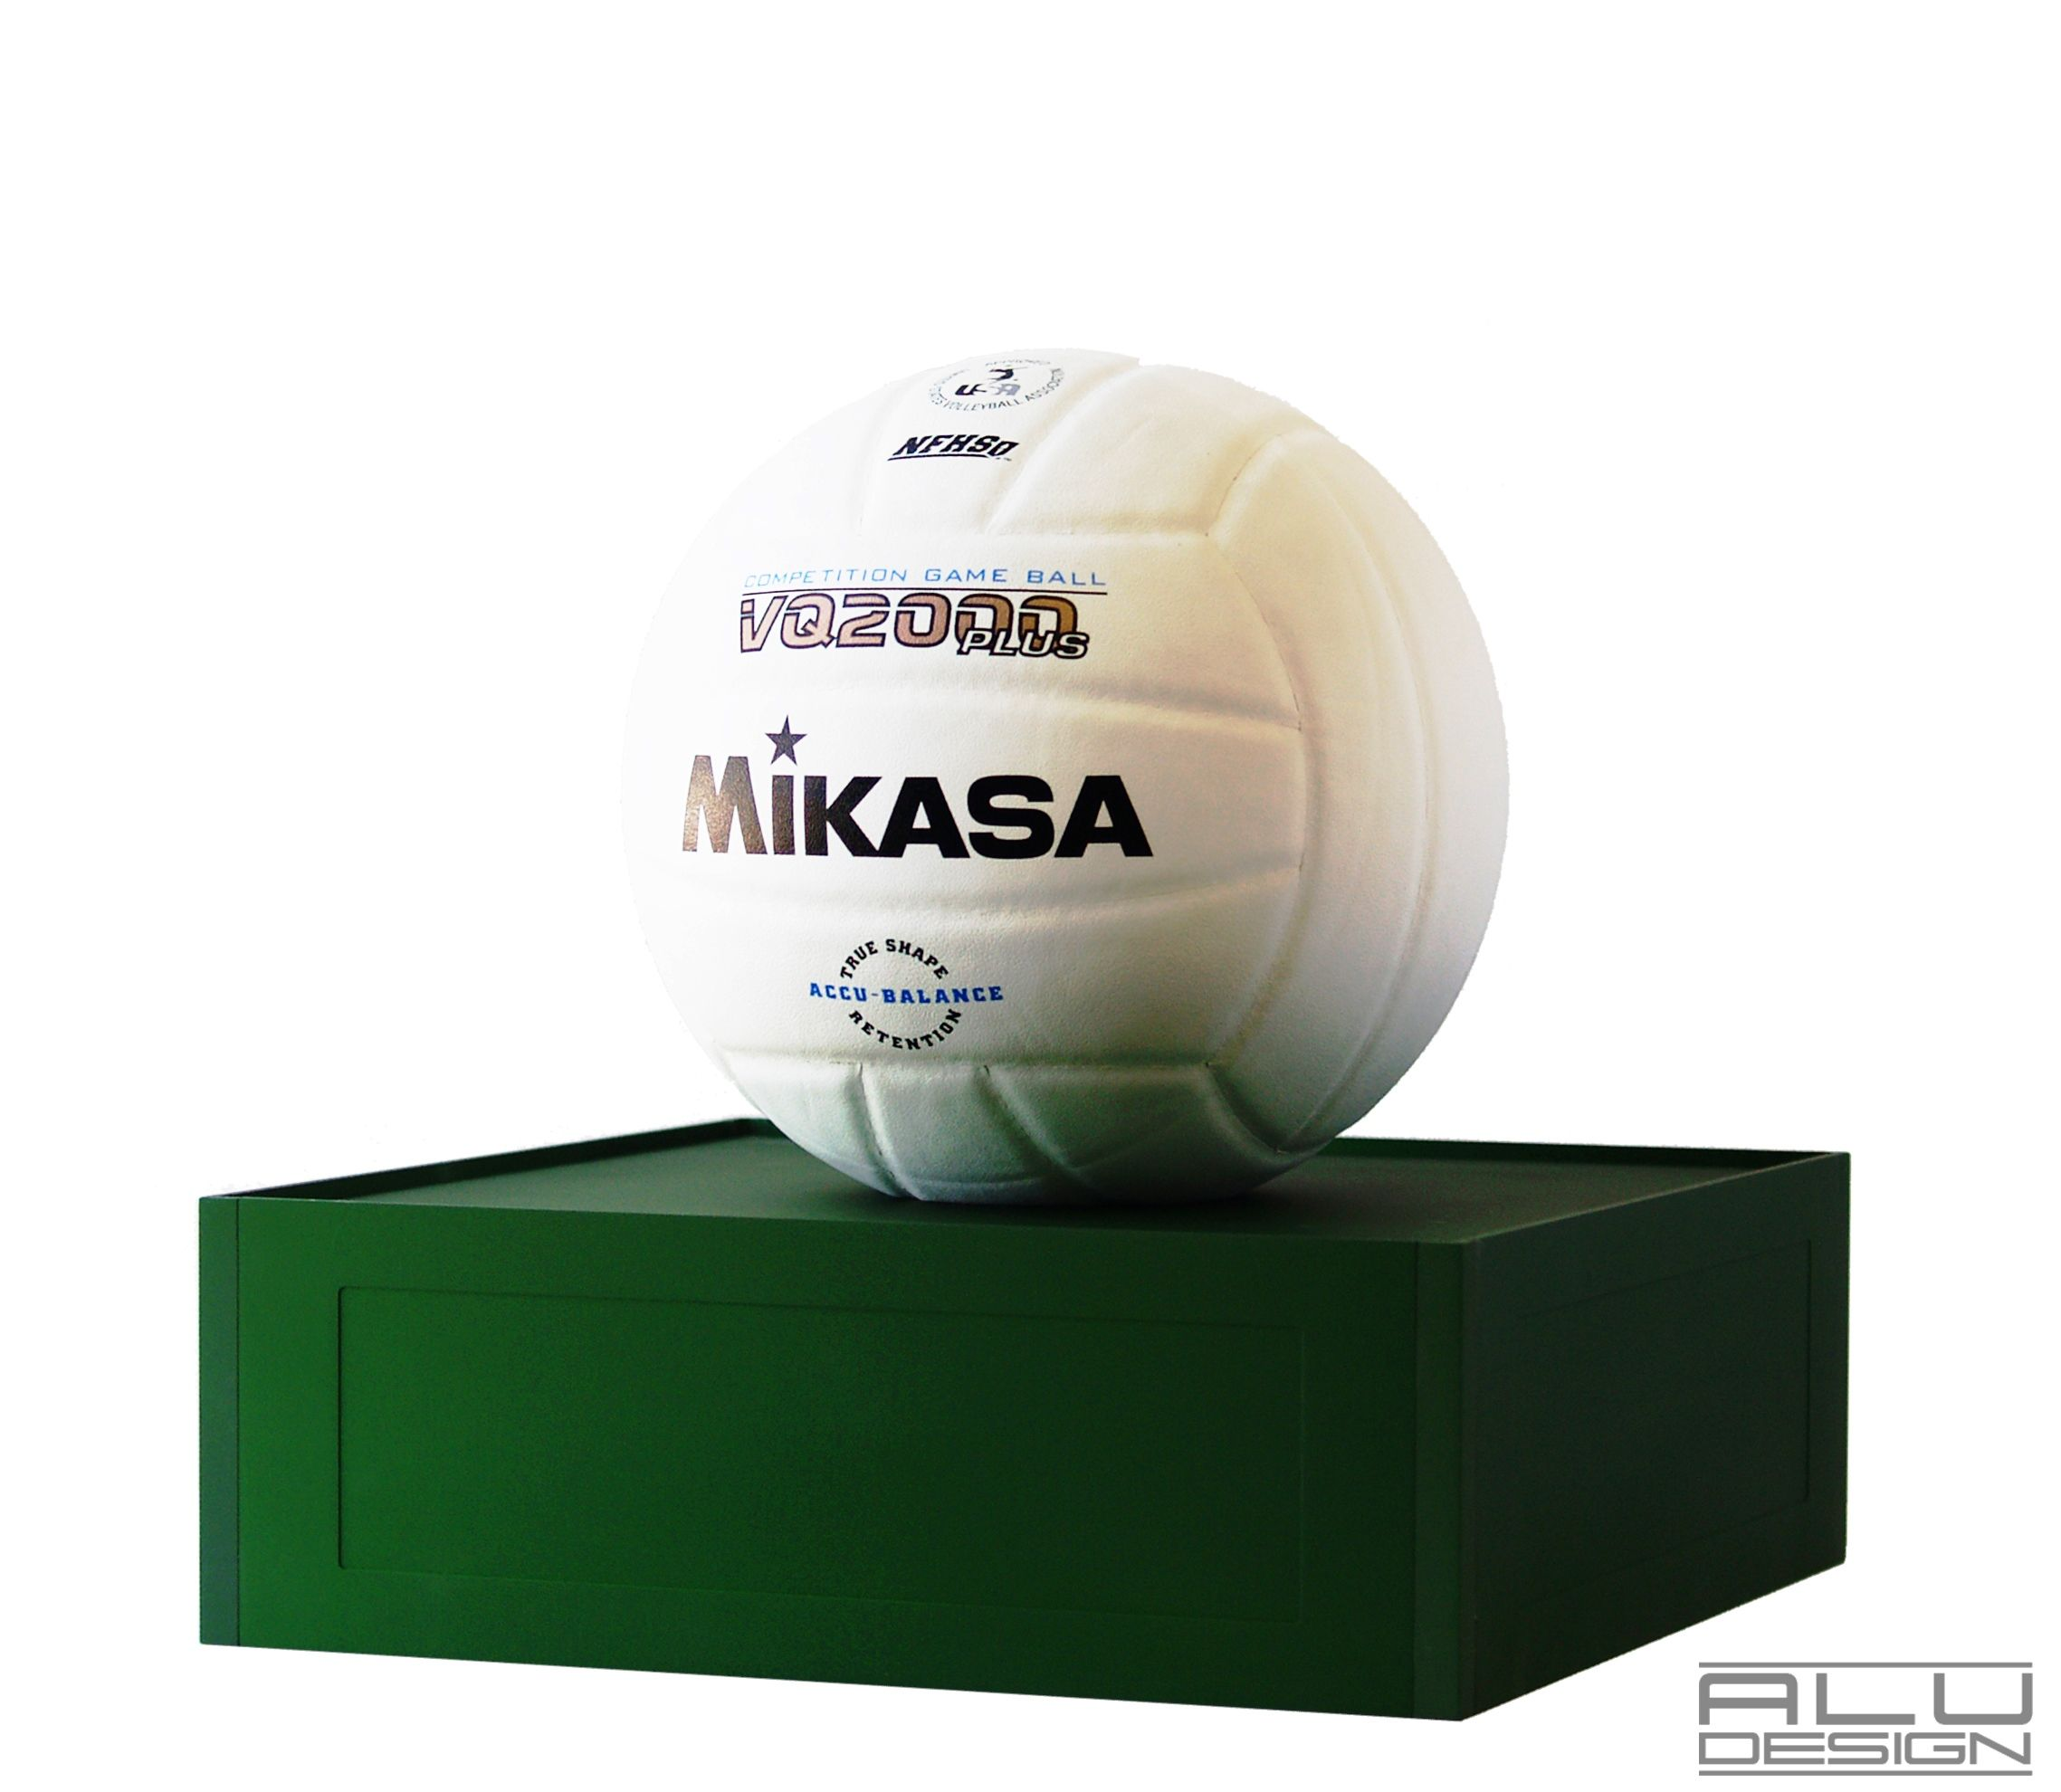 Volleyball Display Case Without Cover Cnc Machined Anodized Aluminum Green Available In Various Colors We Can Add You Display Case Laser Engraving Cnc Machine